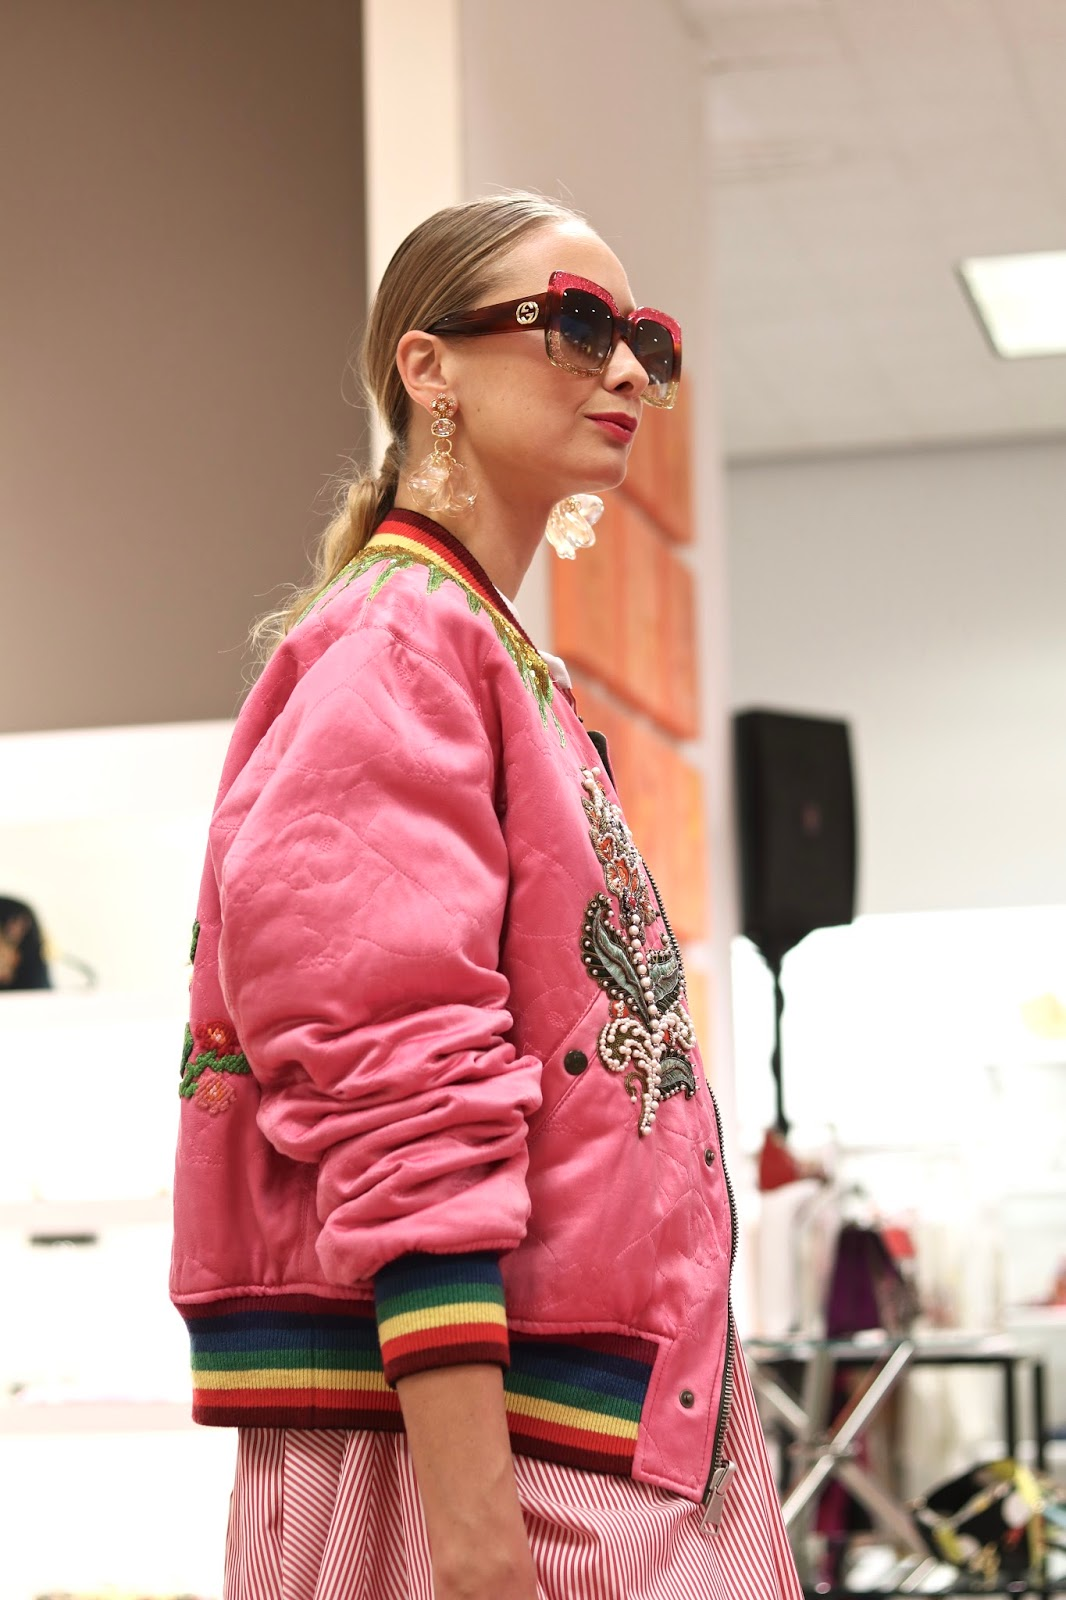 Gucci pink jacket, gucci 2018 jacket, colorful jacket